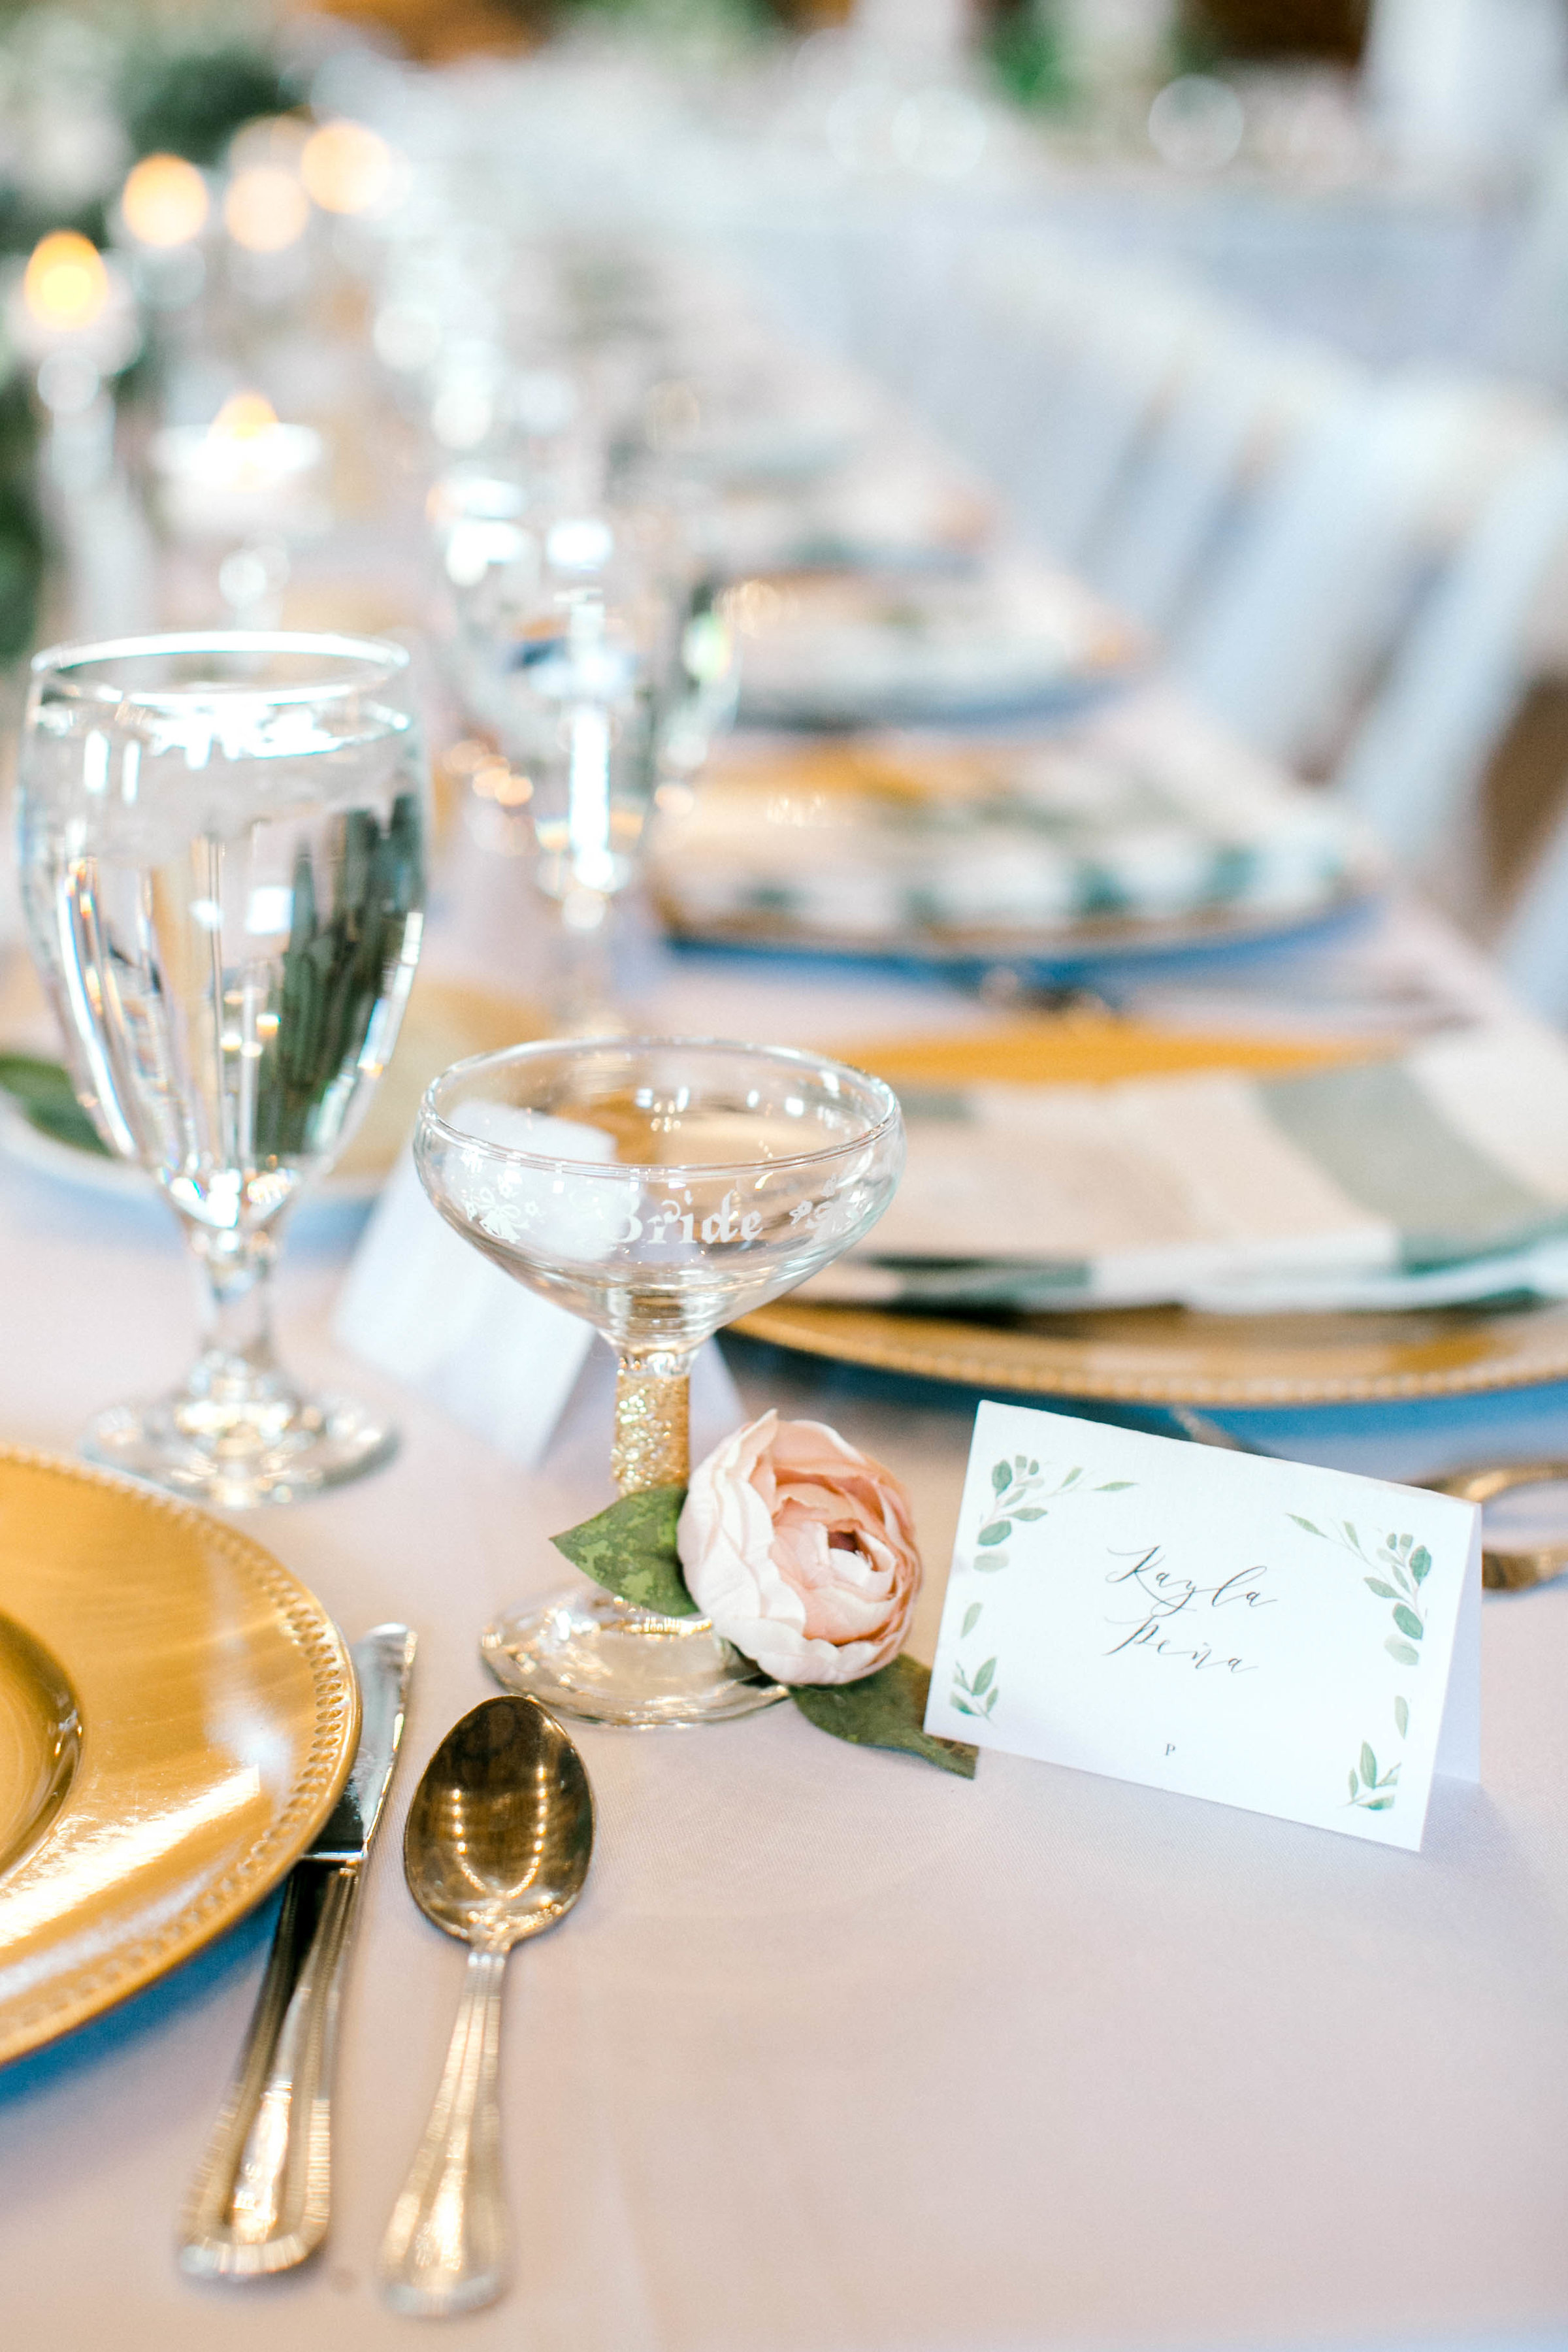 How to Create a Beautiful Wedding Table Setting on a Budget